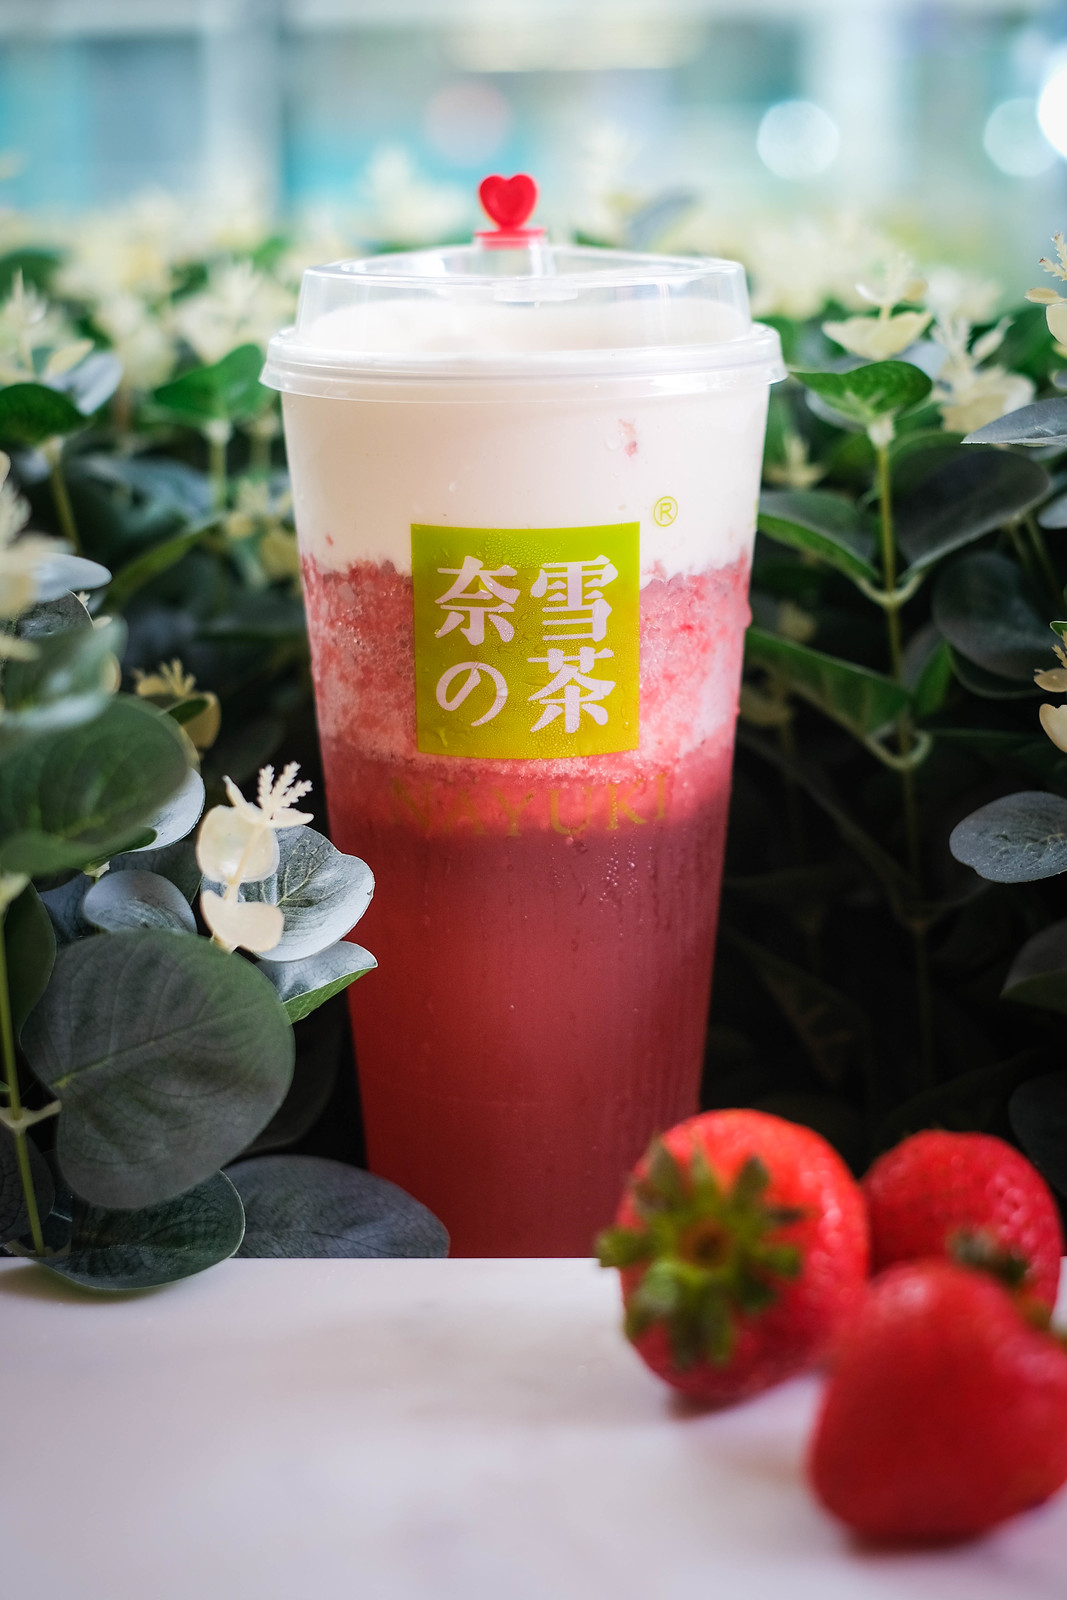 Nayuki Supreme Strawberry